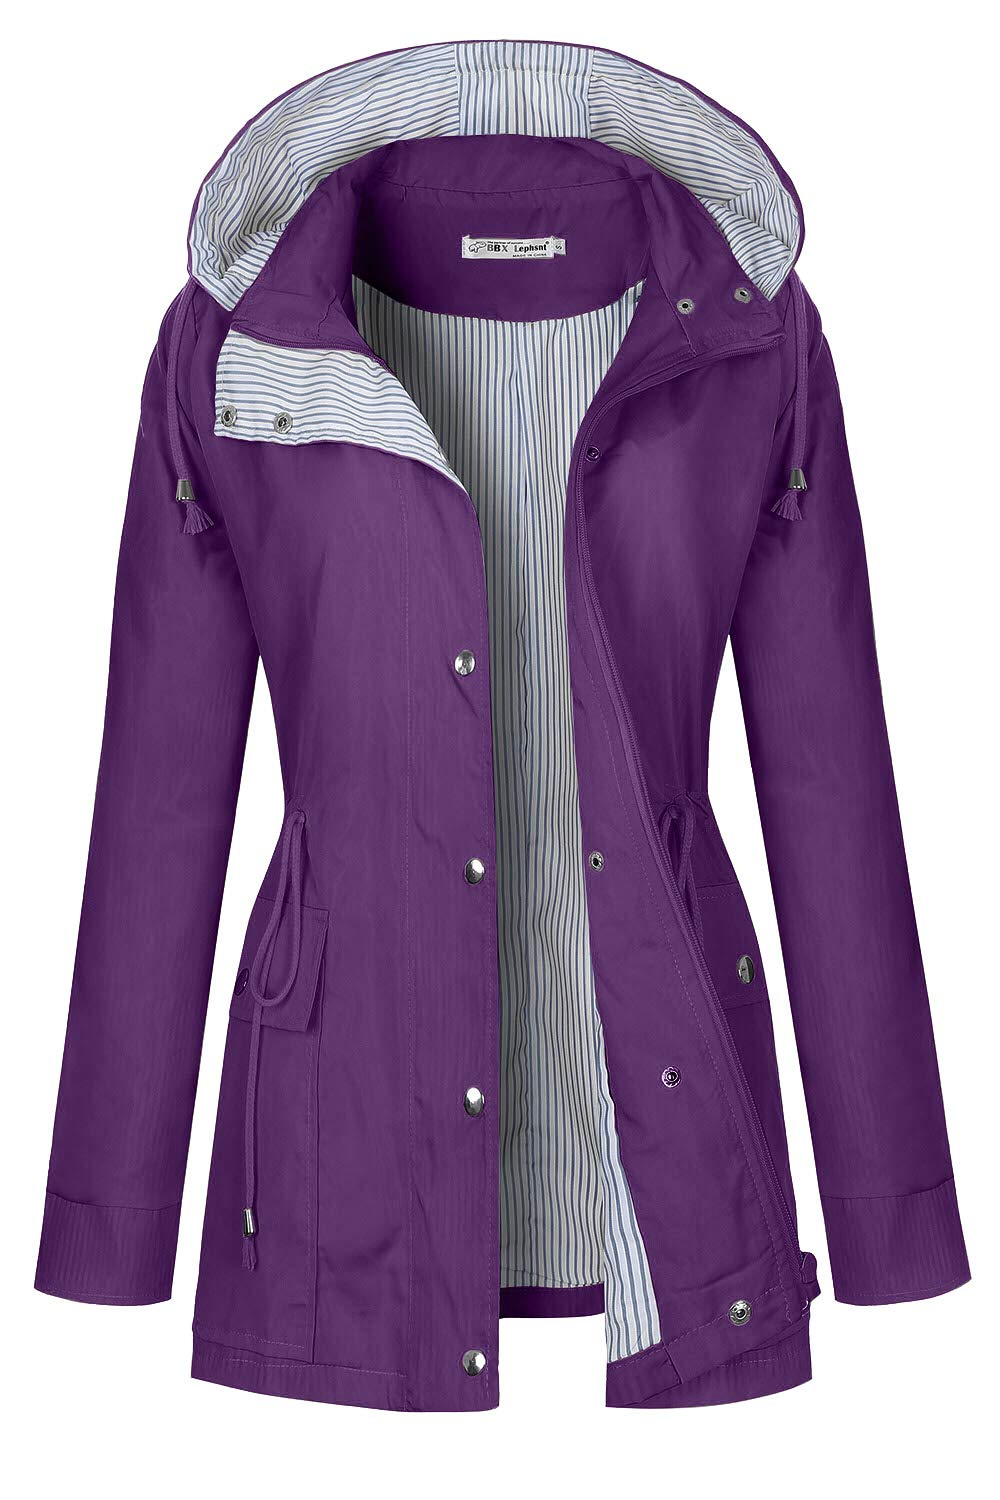 BBX Lephsnt Raincoats Waterproof Rain Jacket Active Outdoor Detachable Hooded Women's Trench Coats Purple by BBX Lephsnt